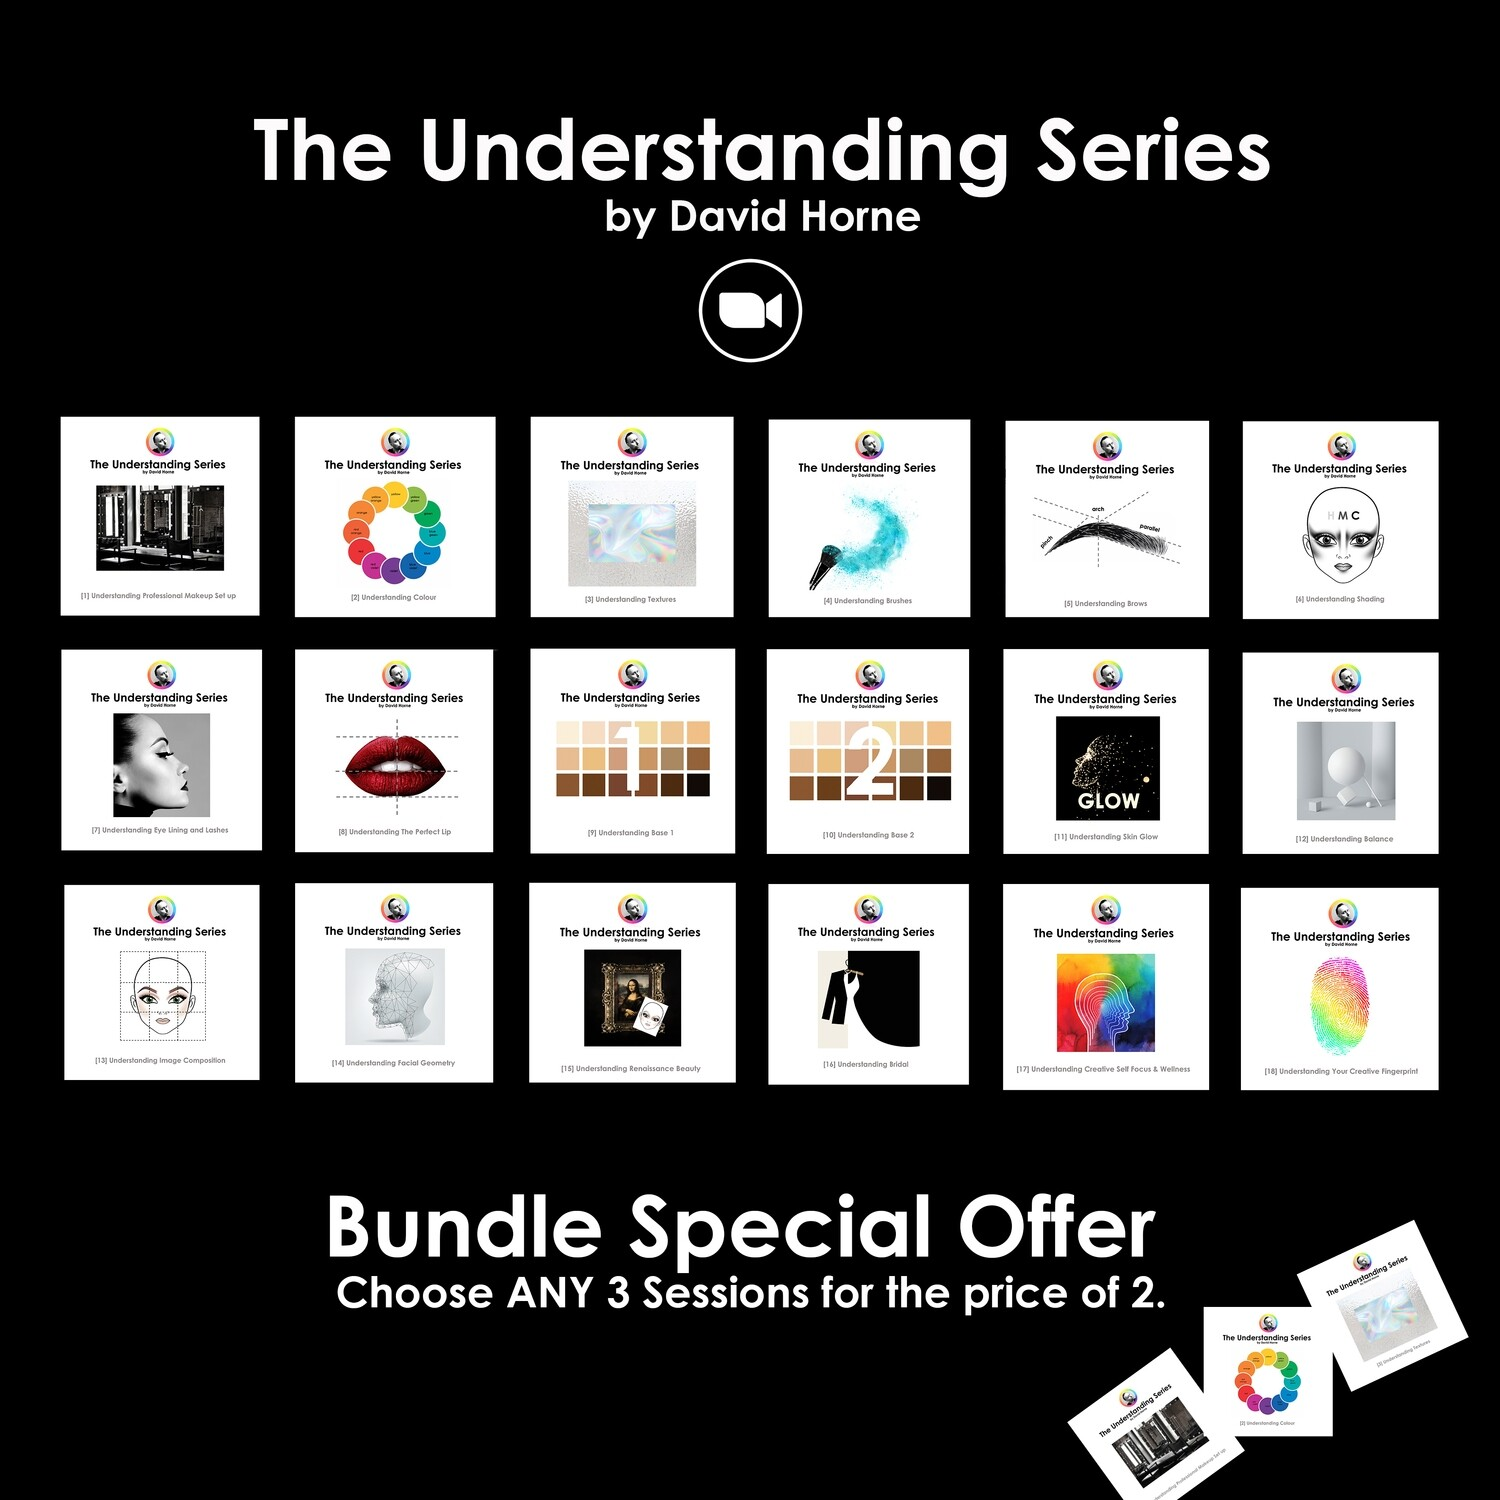 Bundle *Special Offer*